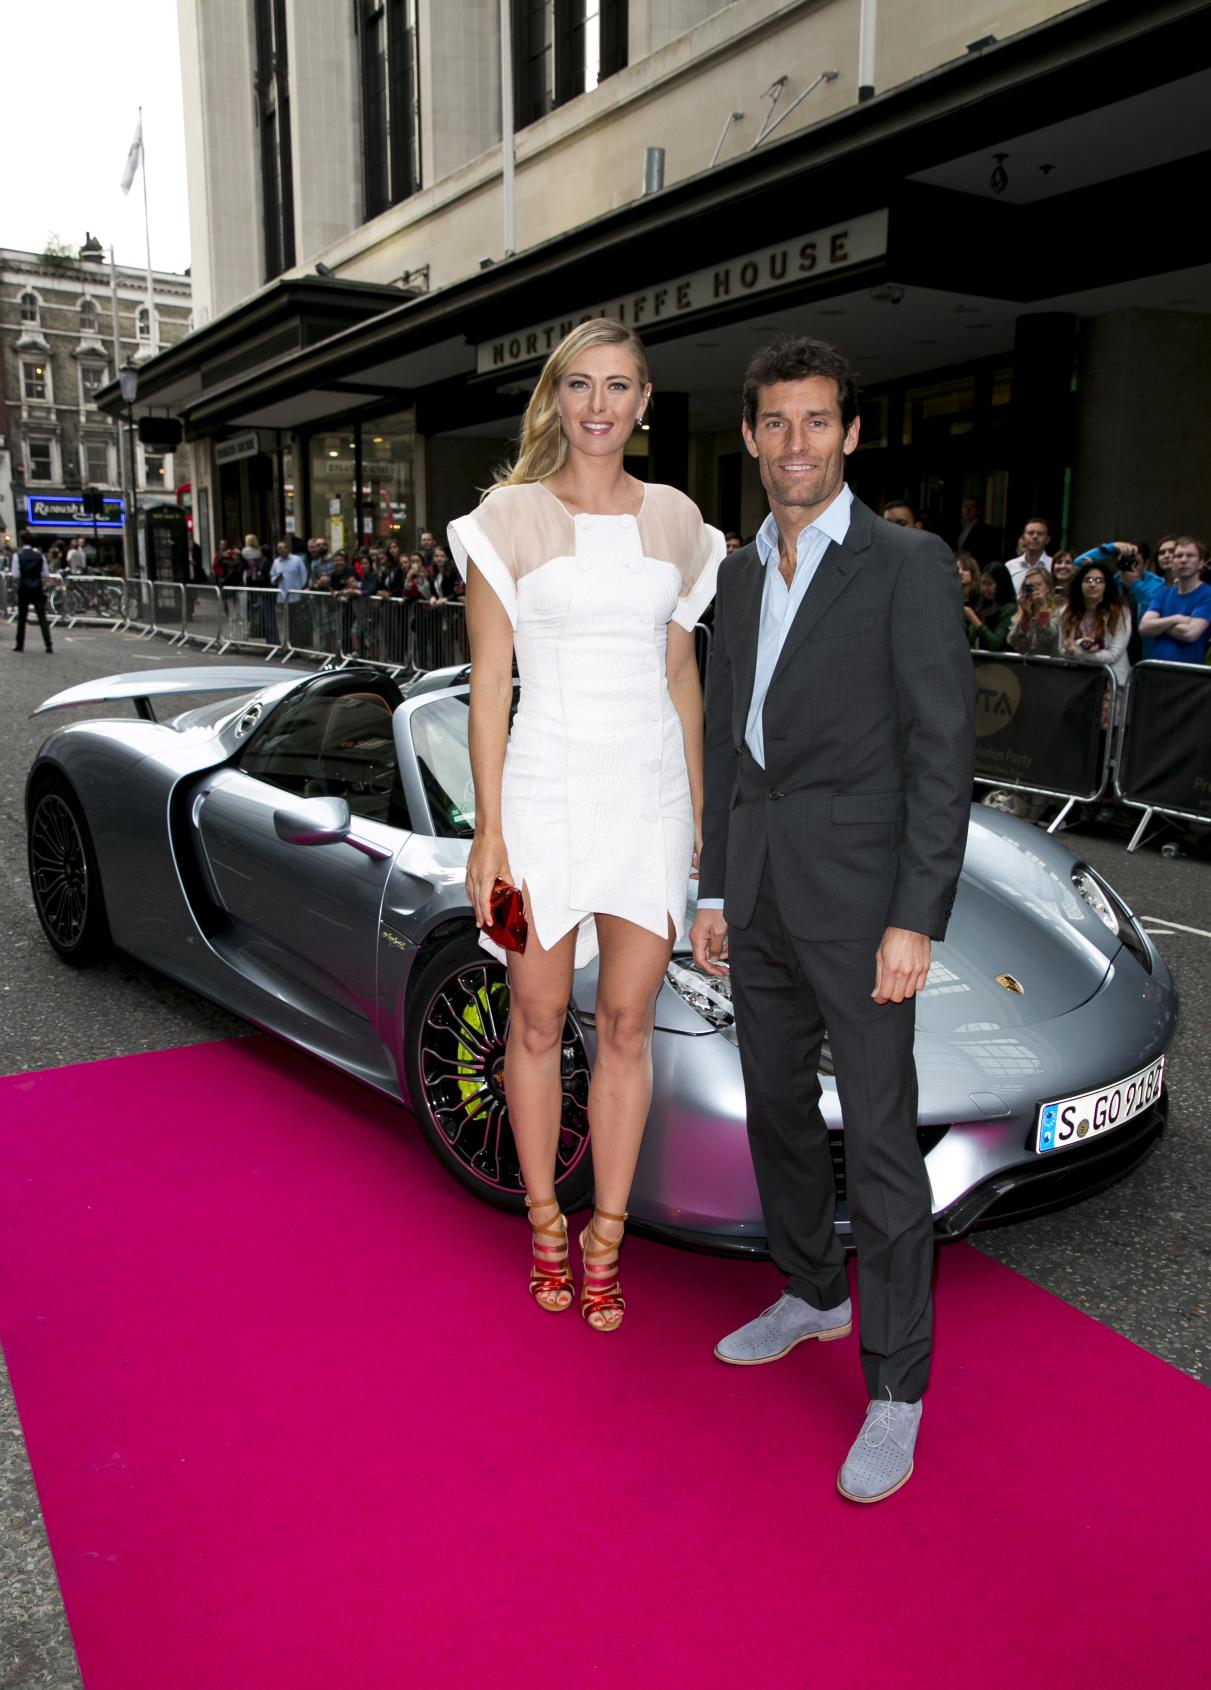 Maria_Sharapova_and_Mark_Webber_arrive_at_the_WTA_at_Kensington_Roof_Gardens_in_the_918_Spyder